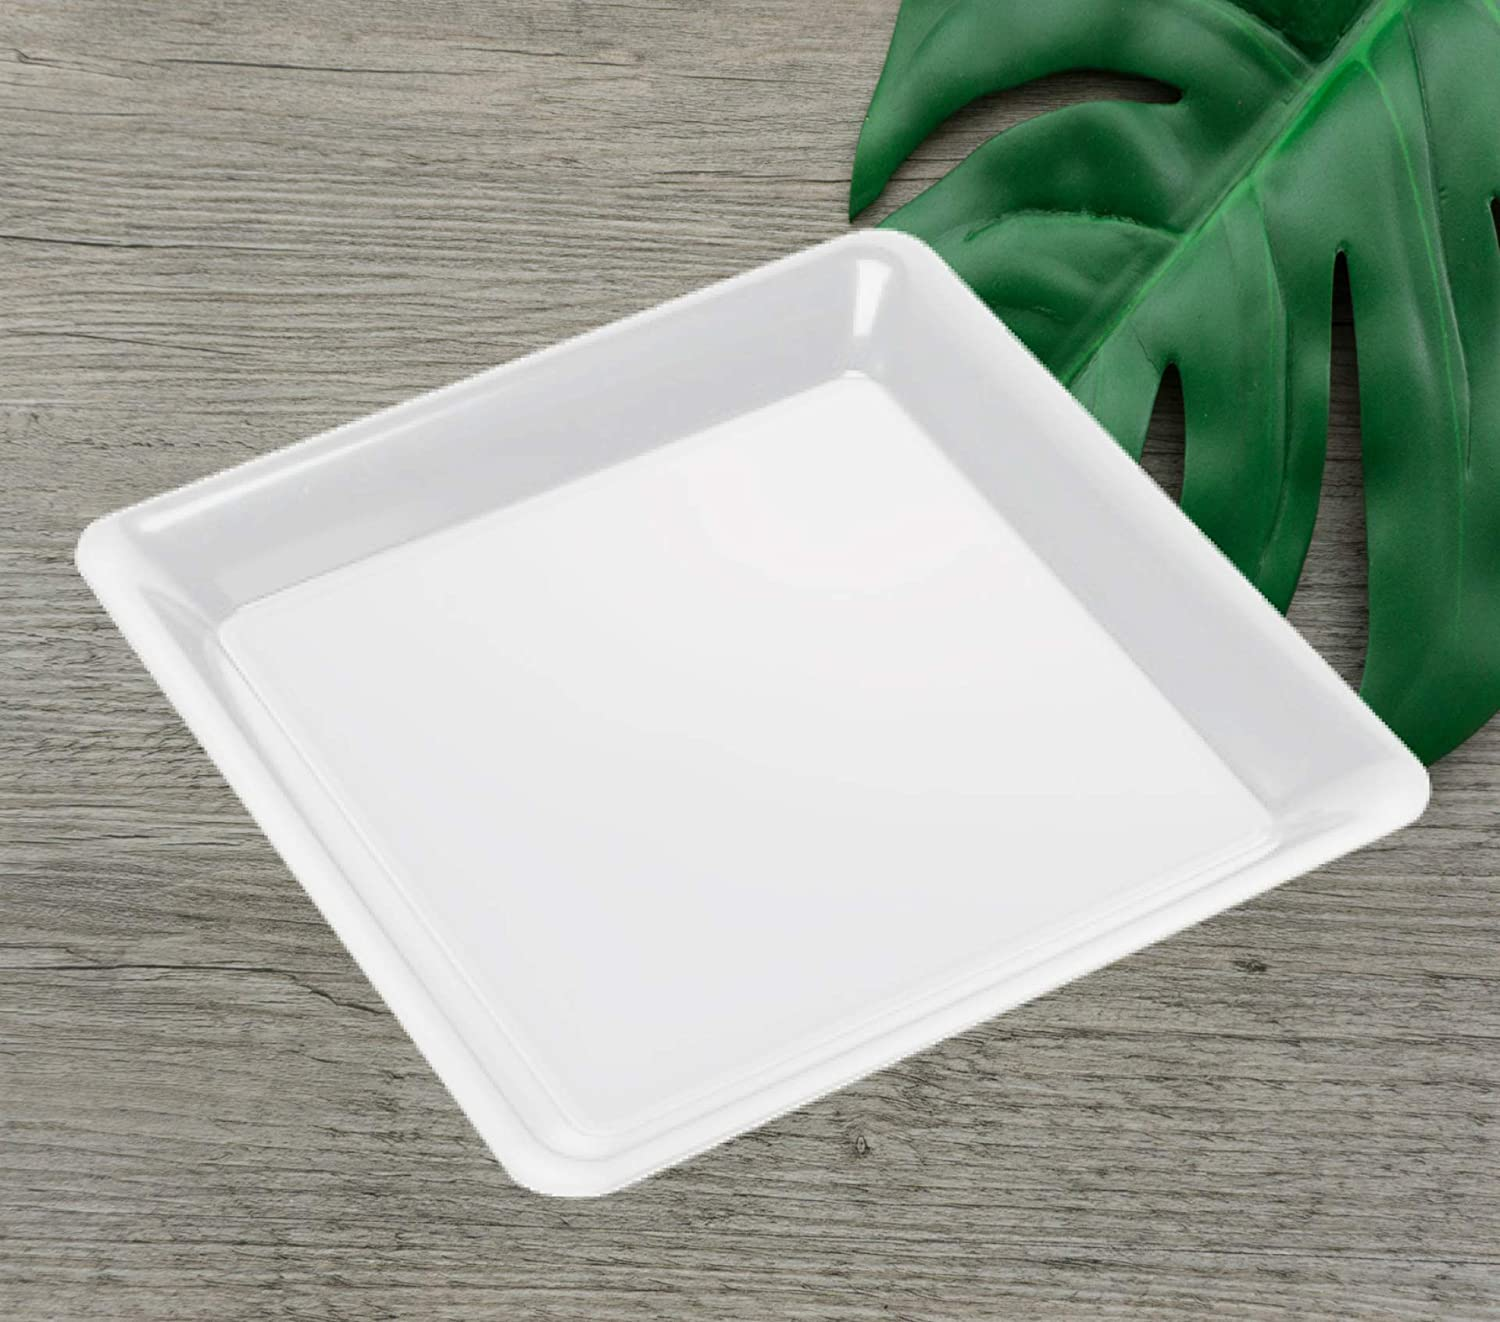 "4 12"" White Square Plastic Trays Heavy Duty Plastic Serving Tray 12"" x 12"" Unbreakable Serving Platters Food Tray Decorative Serving Trays Wedding Platter Party Trays Disposable Serving Party Platters"